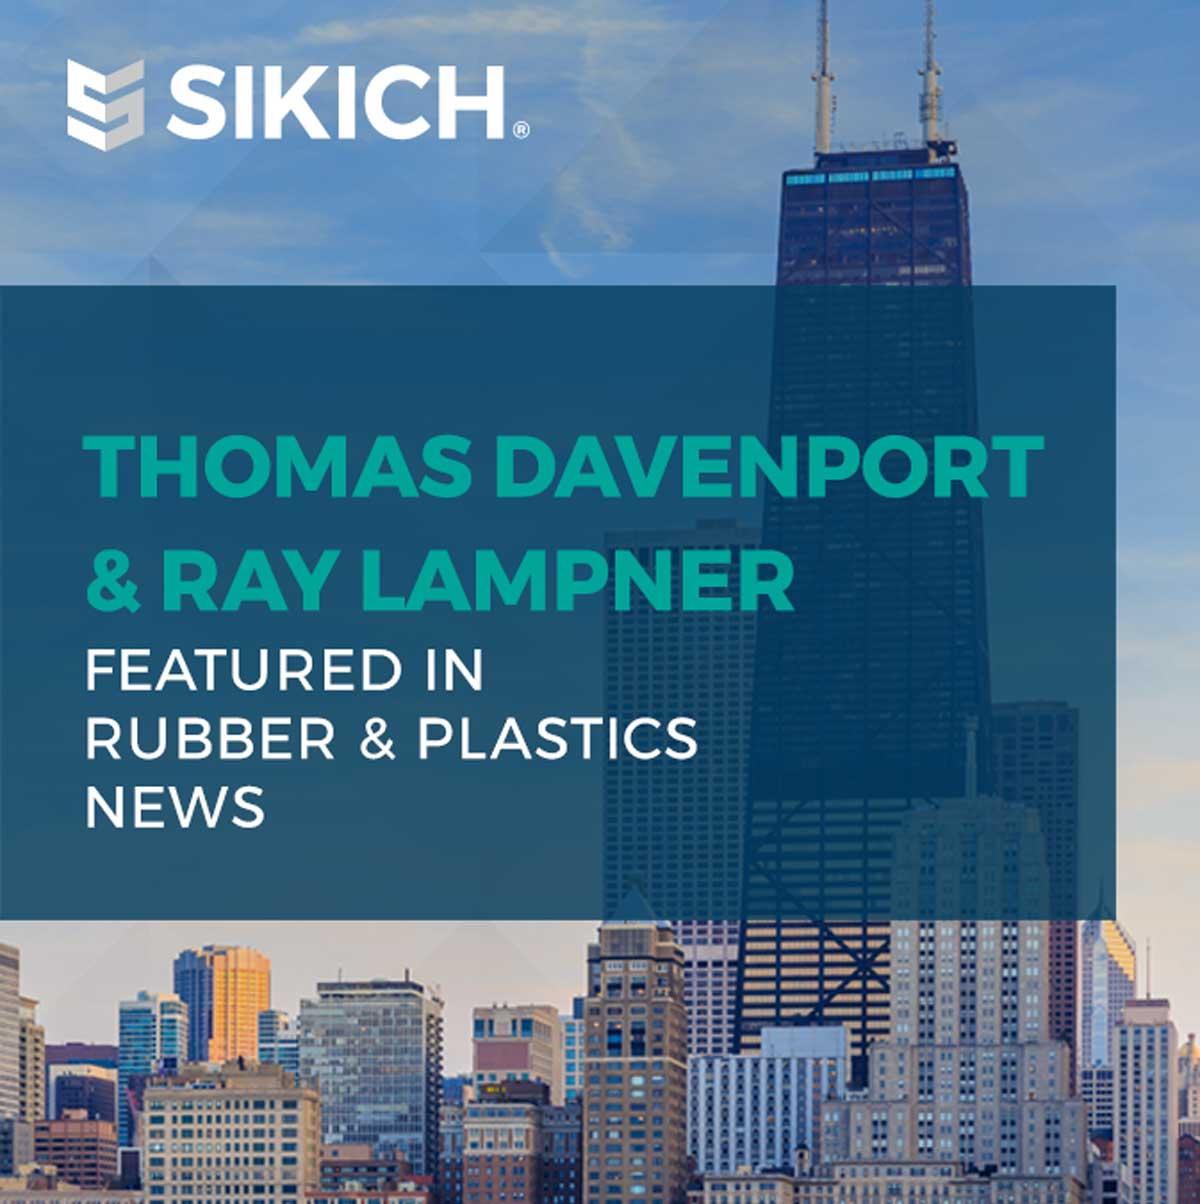 Ray Lampner and Thomas Davenport in Rubber & Plastics News; background is the Chicago skyline